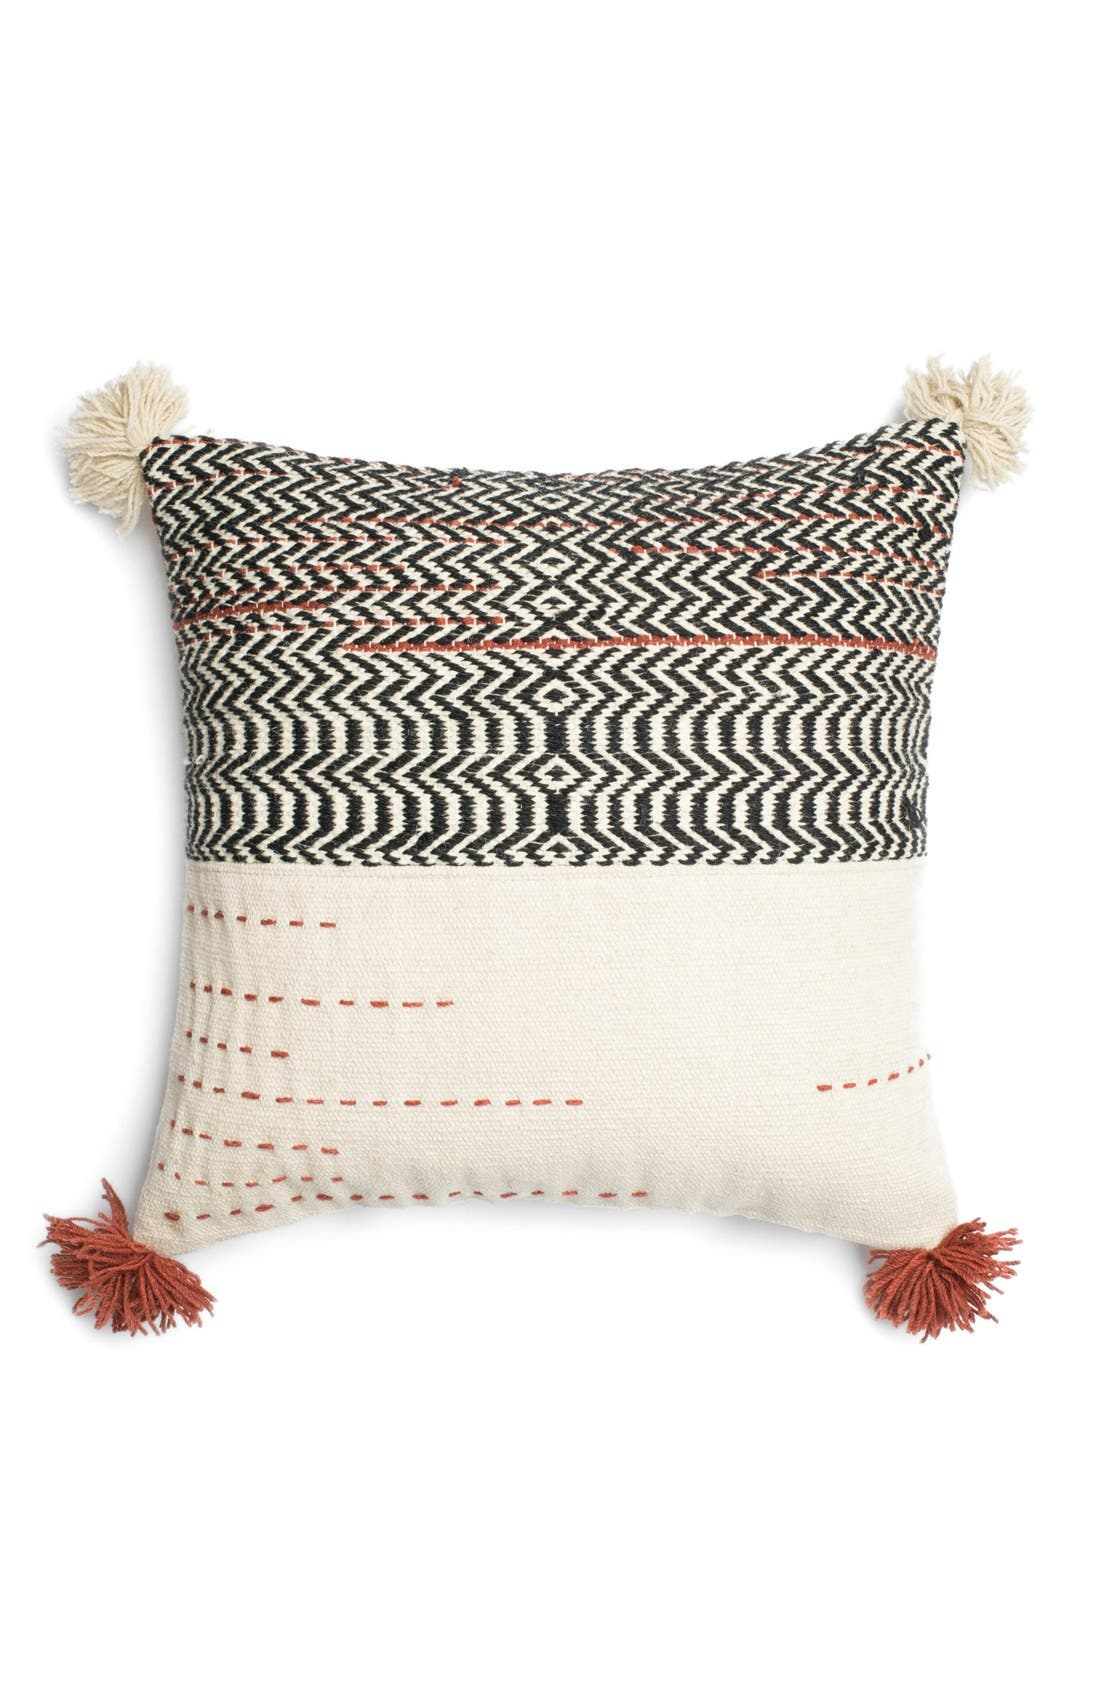 Woven Wool & Cotton Accent Pillow,                         Main,                         color, 001